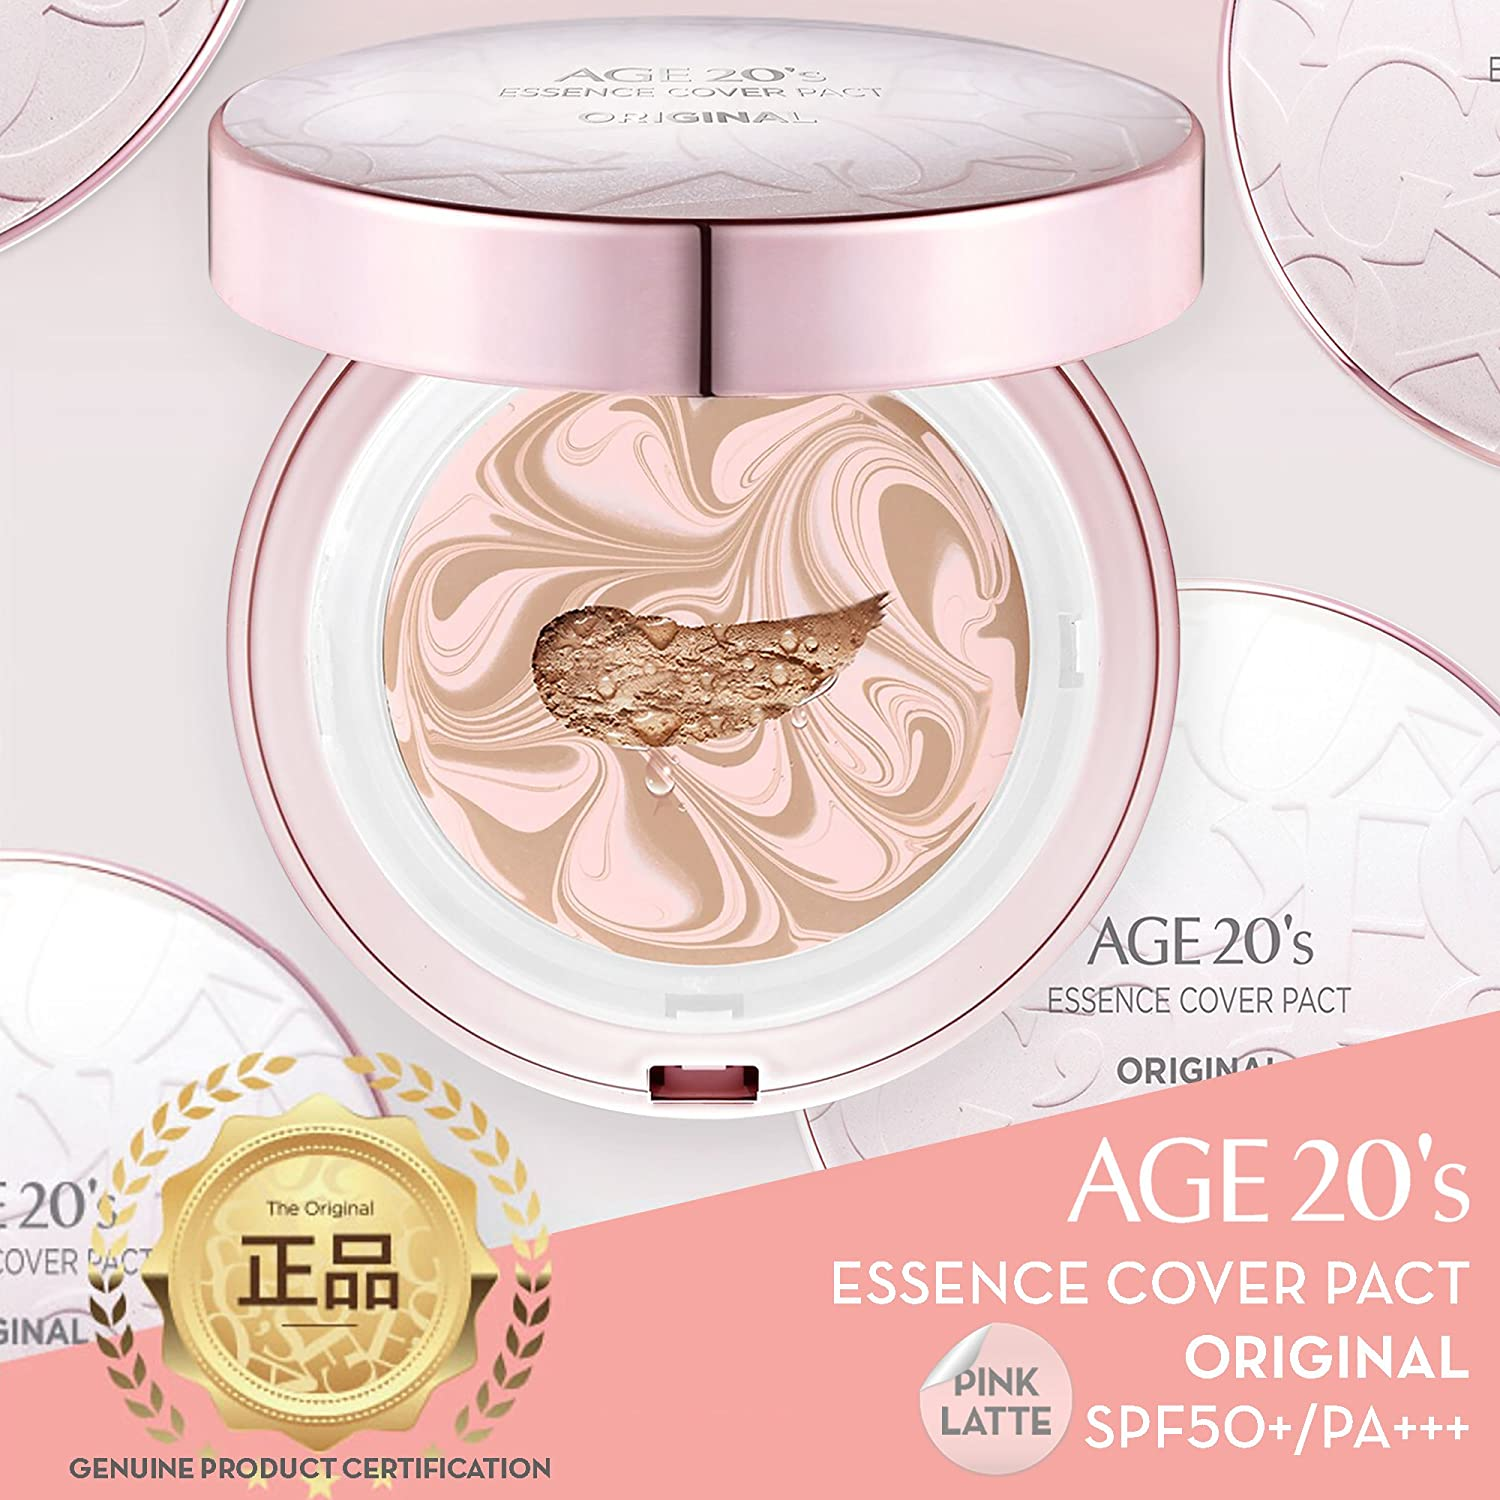 Age 20's Compact Foundation Makeup, Essence Cover Pact SPF50+ Sunscreen (Wrinkle-Smoothing & Brightening) with 68% Hyaluronic Serum (Made in Korea) - Color No. 23 - Pink / Natural Beige Latte AEKYUNG